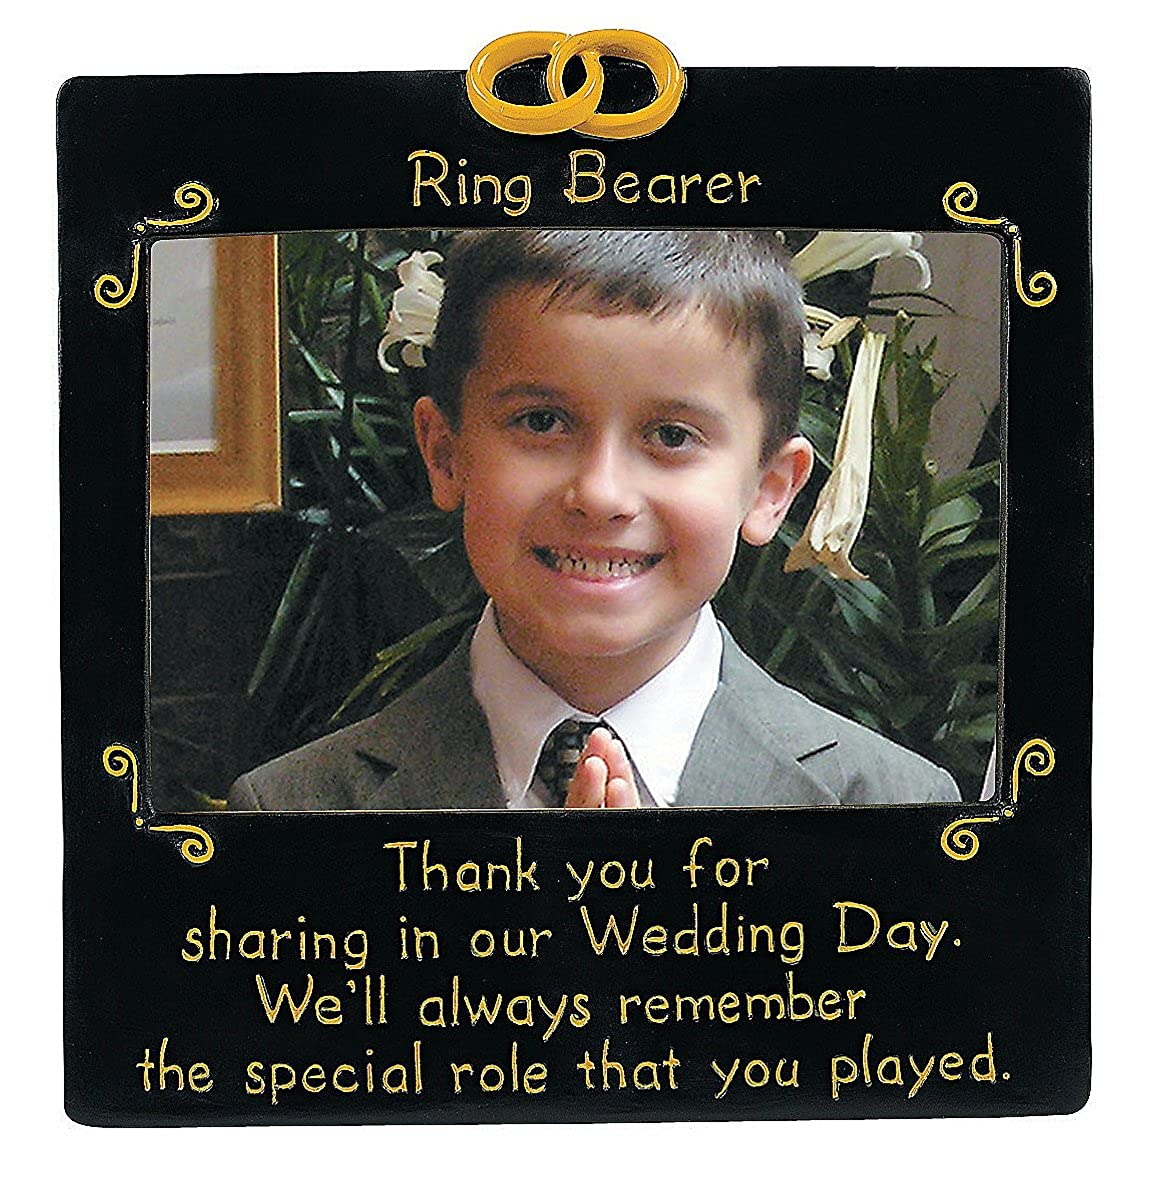 Ring Bearer Photo Frame - Wedding Supplies & Wedding Party Gifts ...